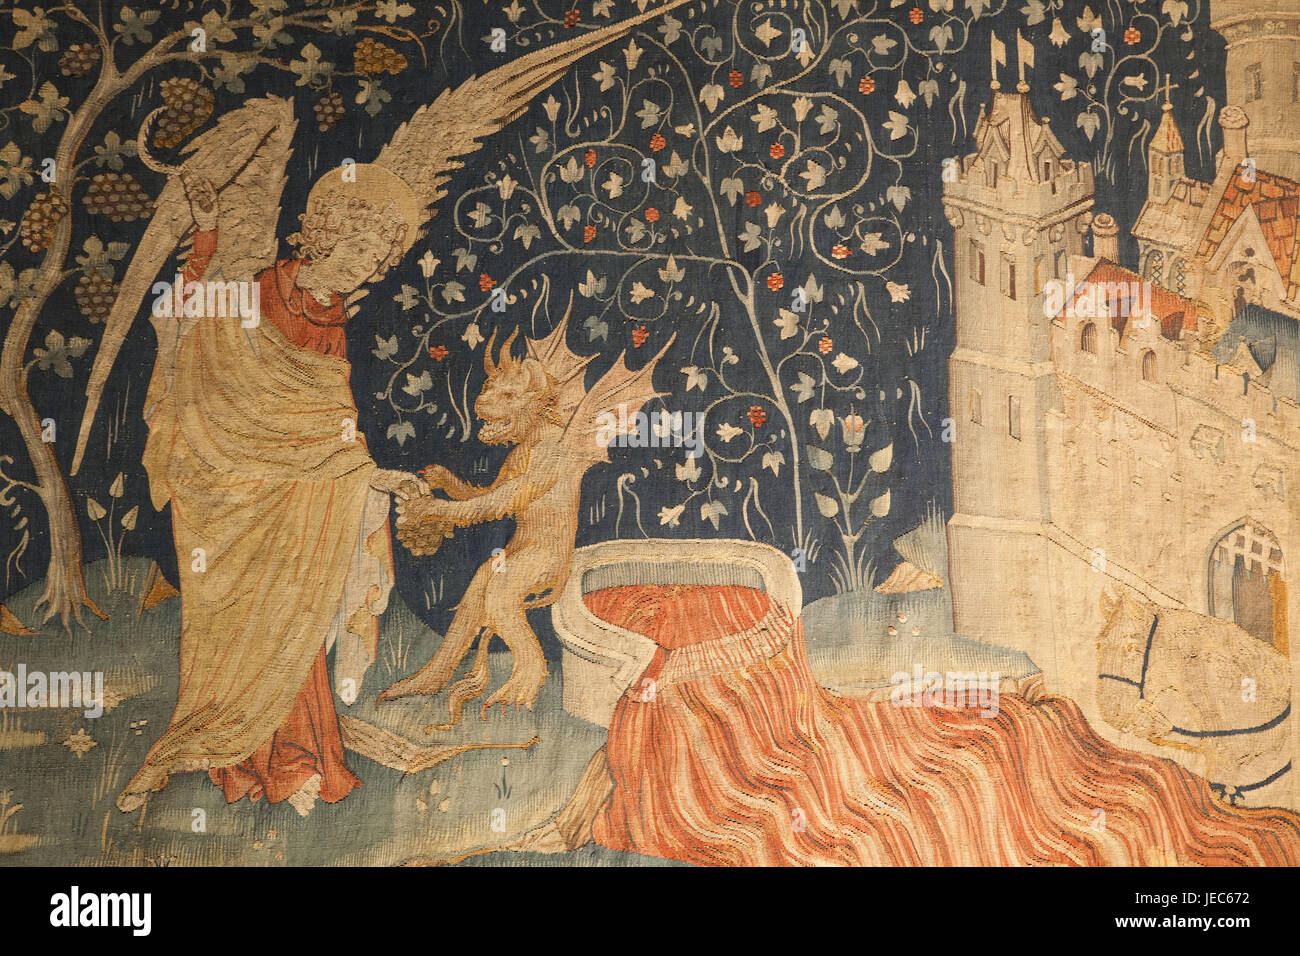 France, Loire valley, lock Angers, gallery of the apocalypse, tapestry, - Stock Image